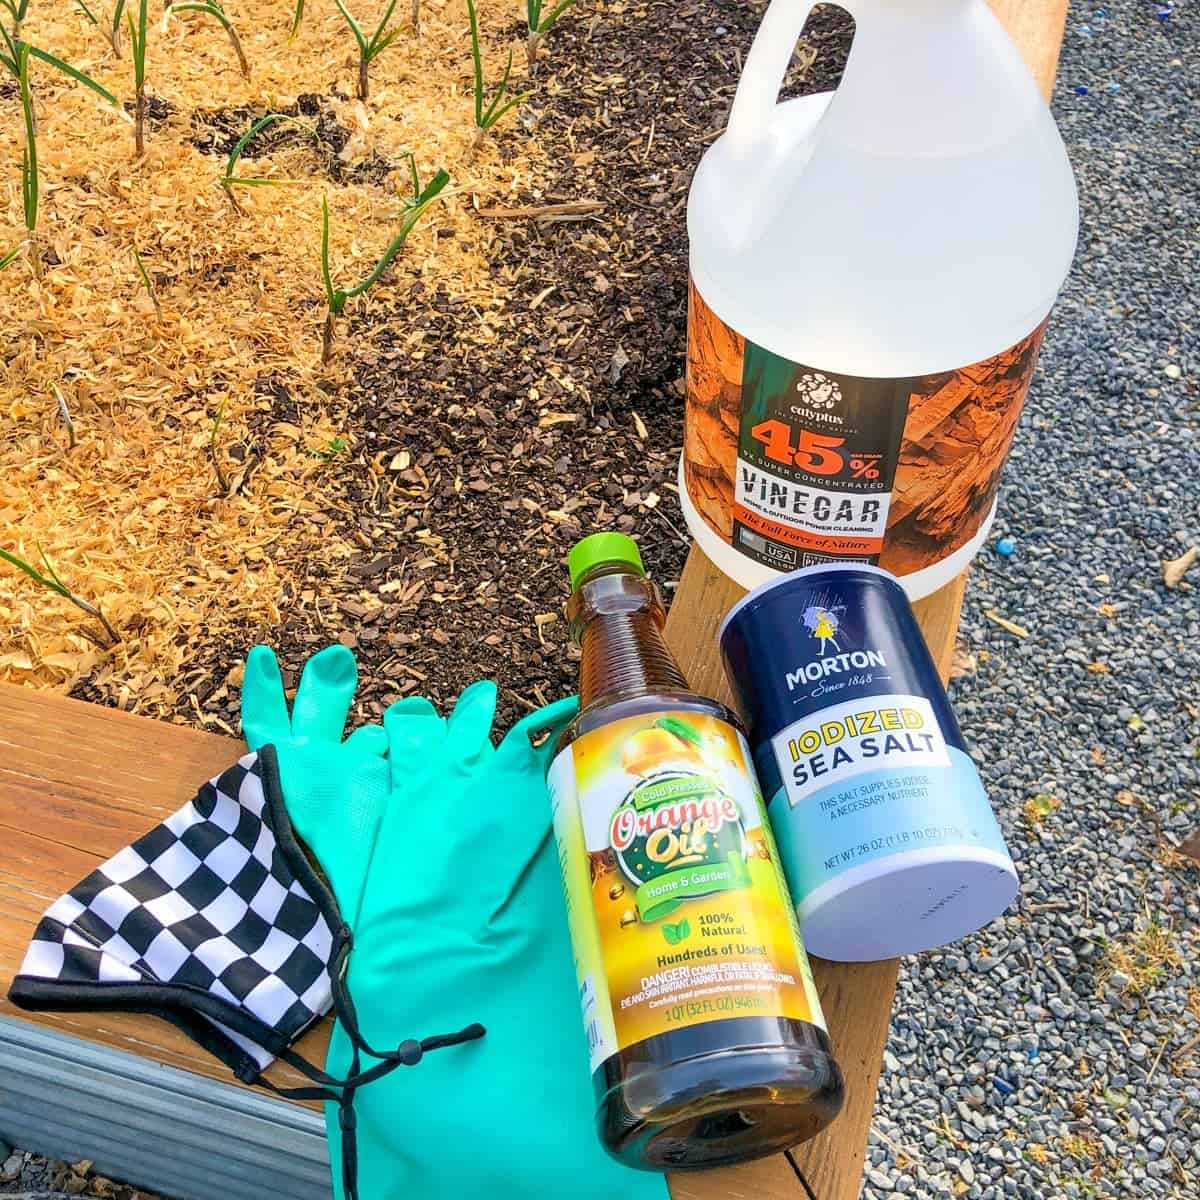 Protective gear (gloves and a mask) sit next to the ingredients for homemade weed killer—orange oil, sea salt, and horticultural vinegar